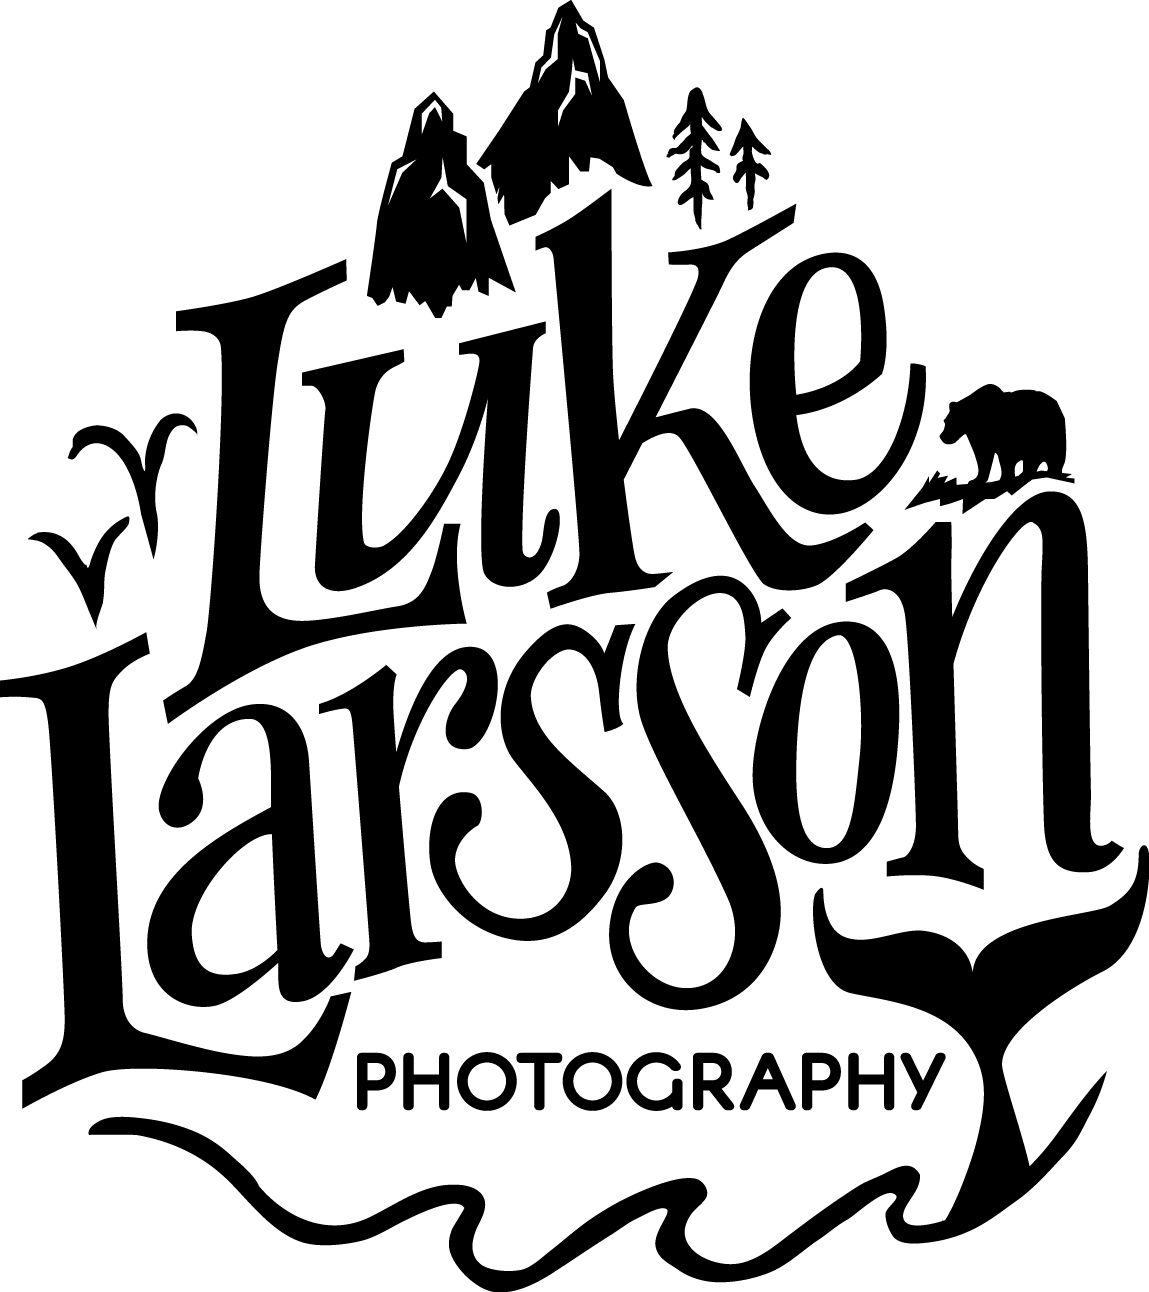 Luke Larsson Photography | Seattle/Portland/Spokane Wedding + Family Photographer